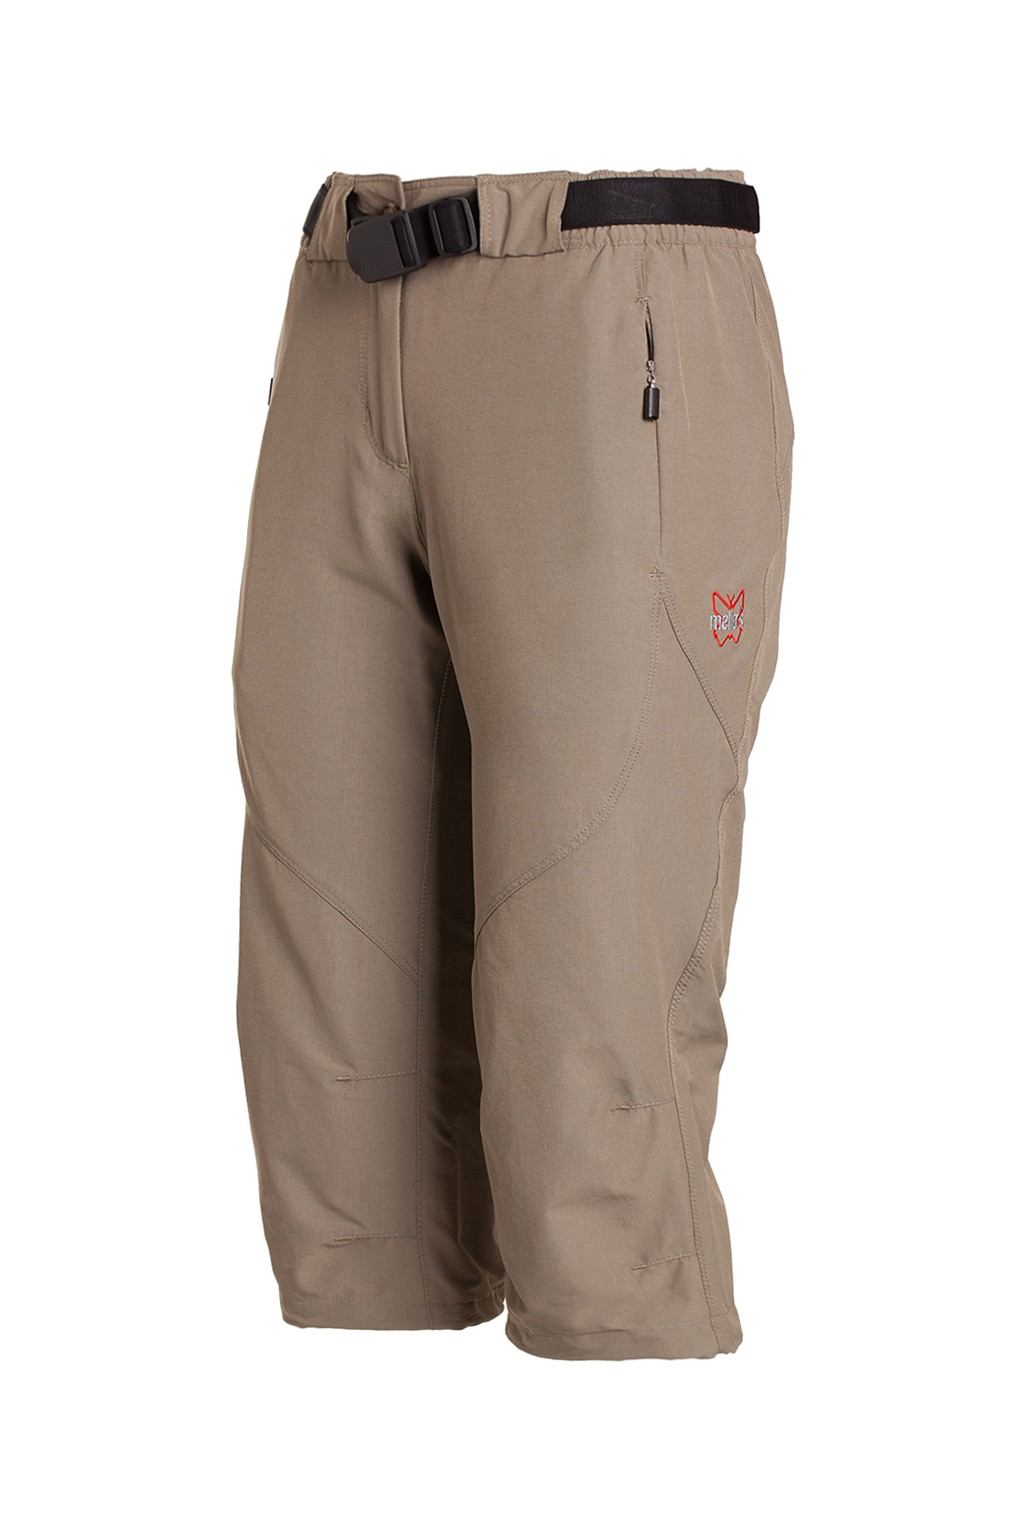 Artemisia Lady Trekking and Hiking Fisherman Pants